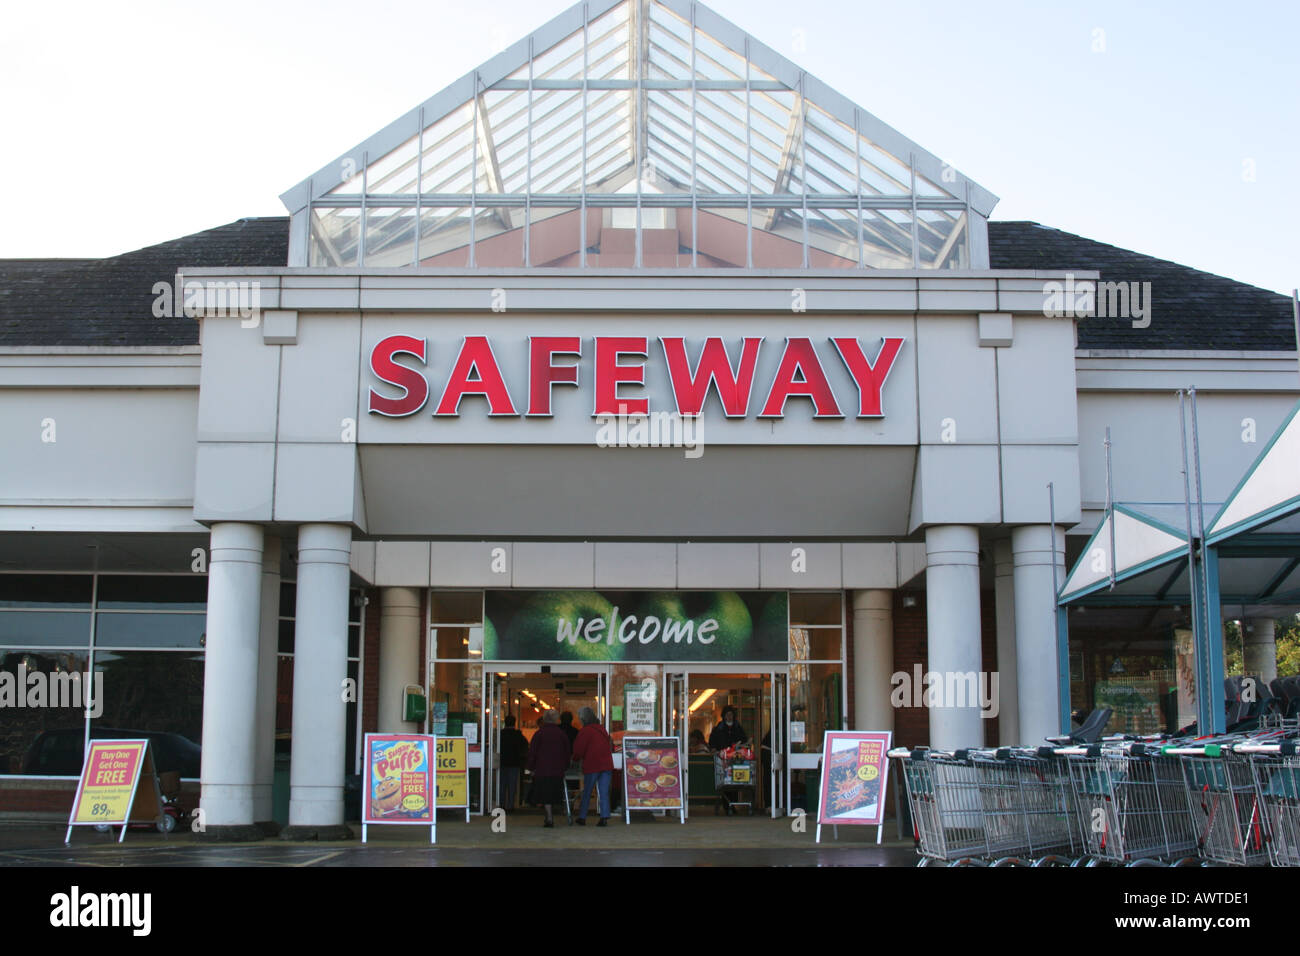 The safeway supermarket sign stock photos the safeway devizes wiltshire uk safeway supermarket sign now morrisons trolley cart kart stock image buycottarizona